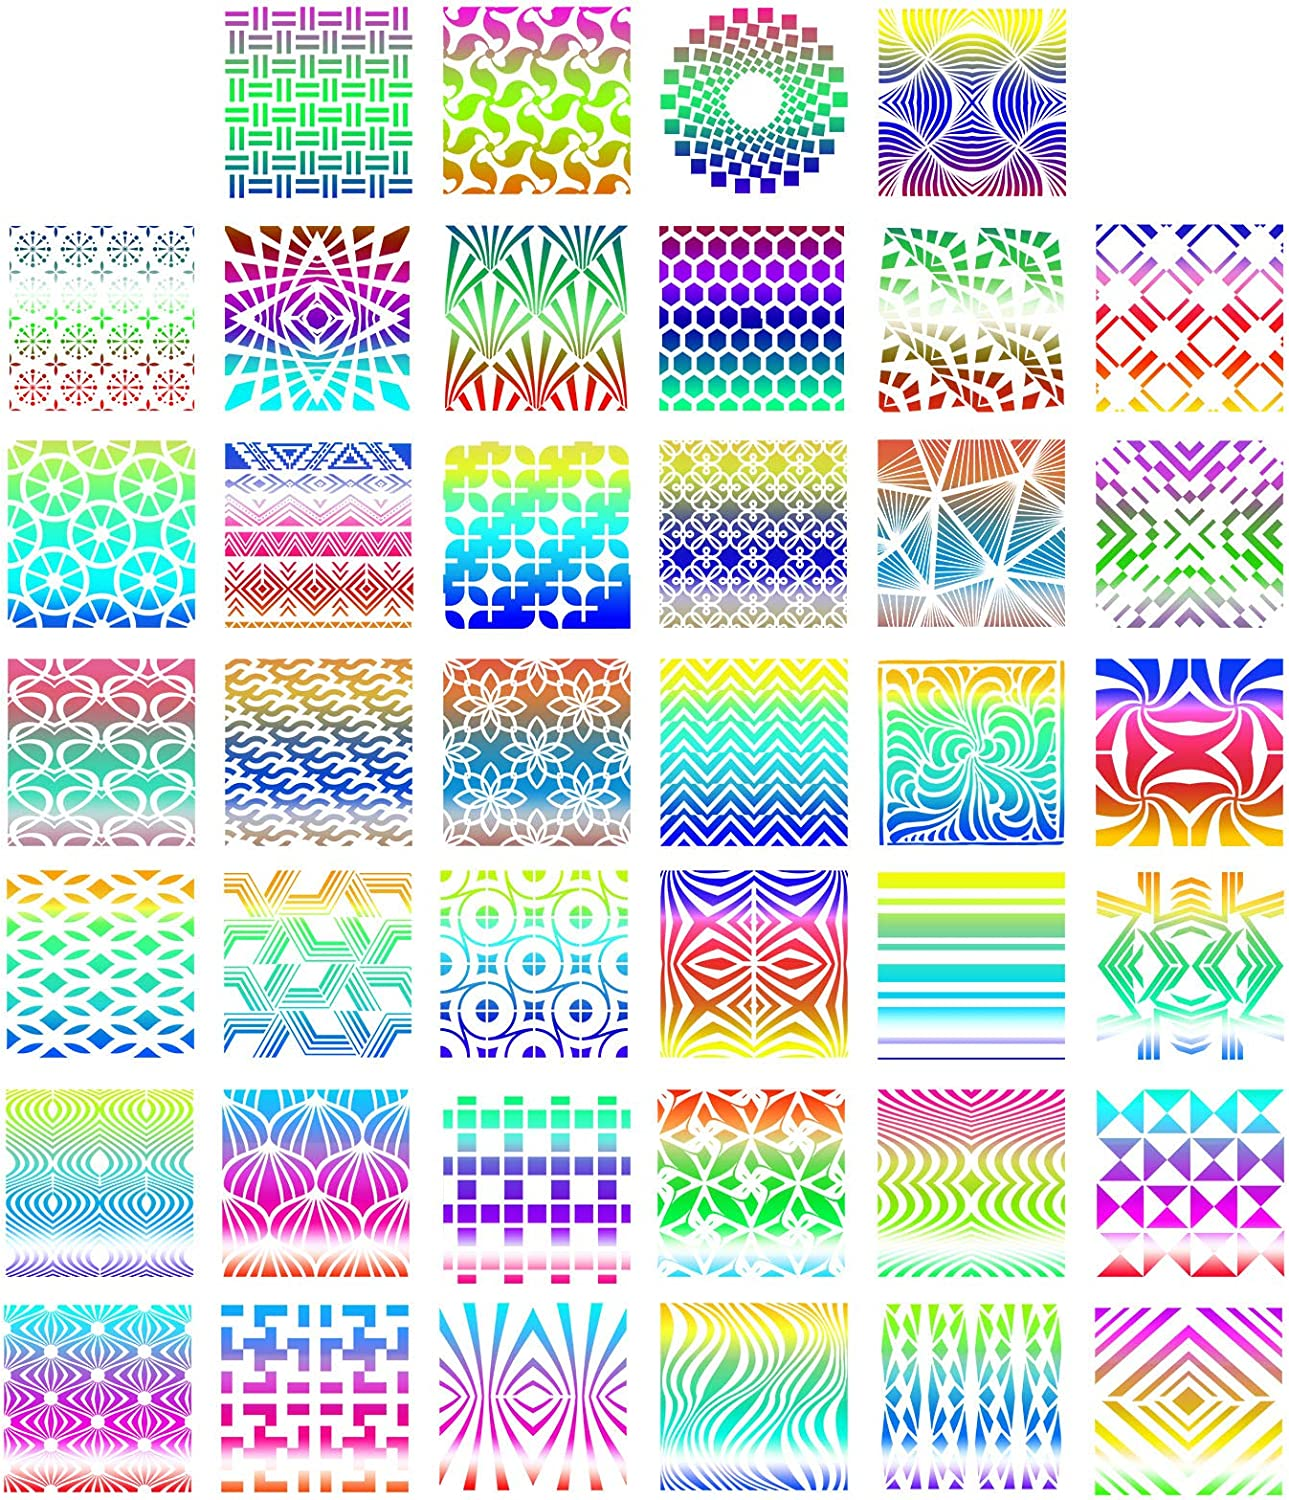 5.1 x 5.1inch 40 Pieces Geometric Stencils Painting Templates for Scrapbooking Cookie Tile Furniture Wall Floor Decor Craft Drawing Tracing DIY Art Supplies